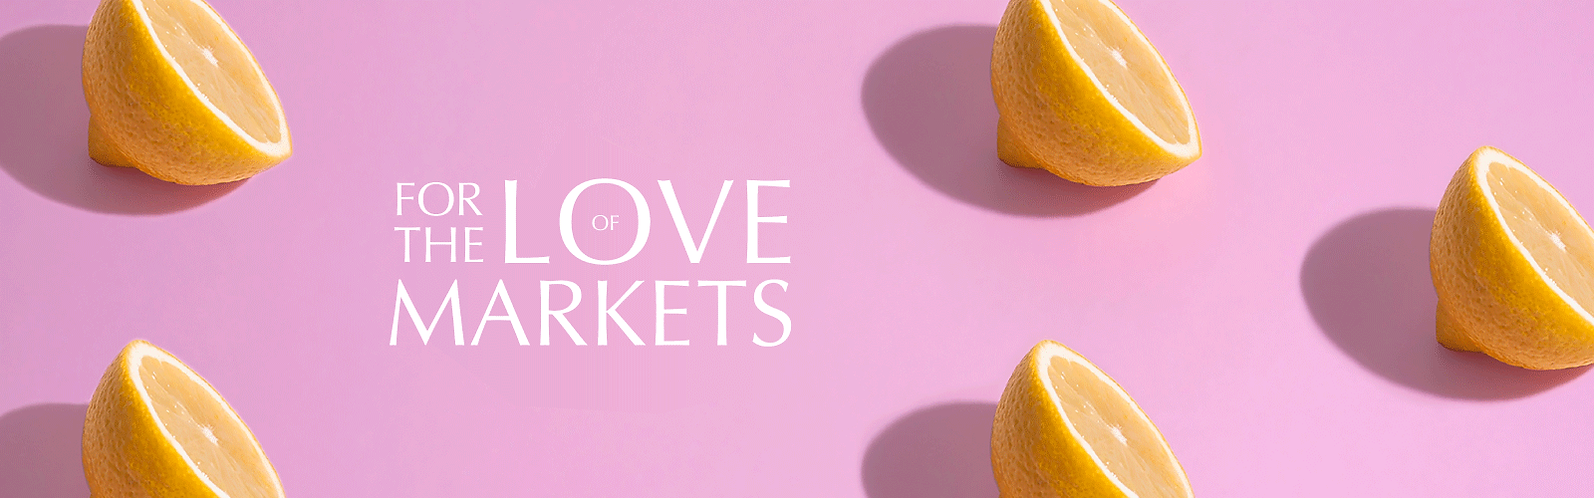 for the love of markets brand banner